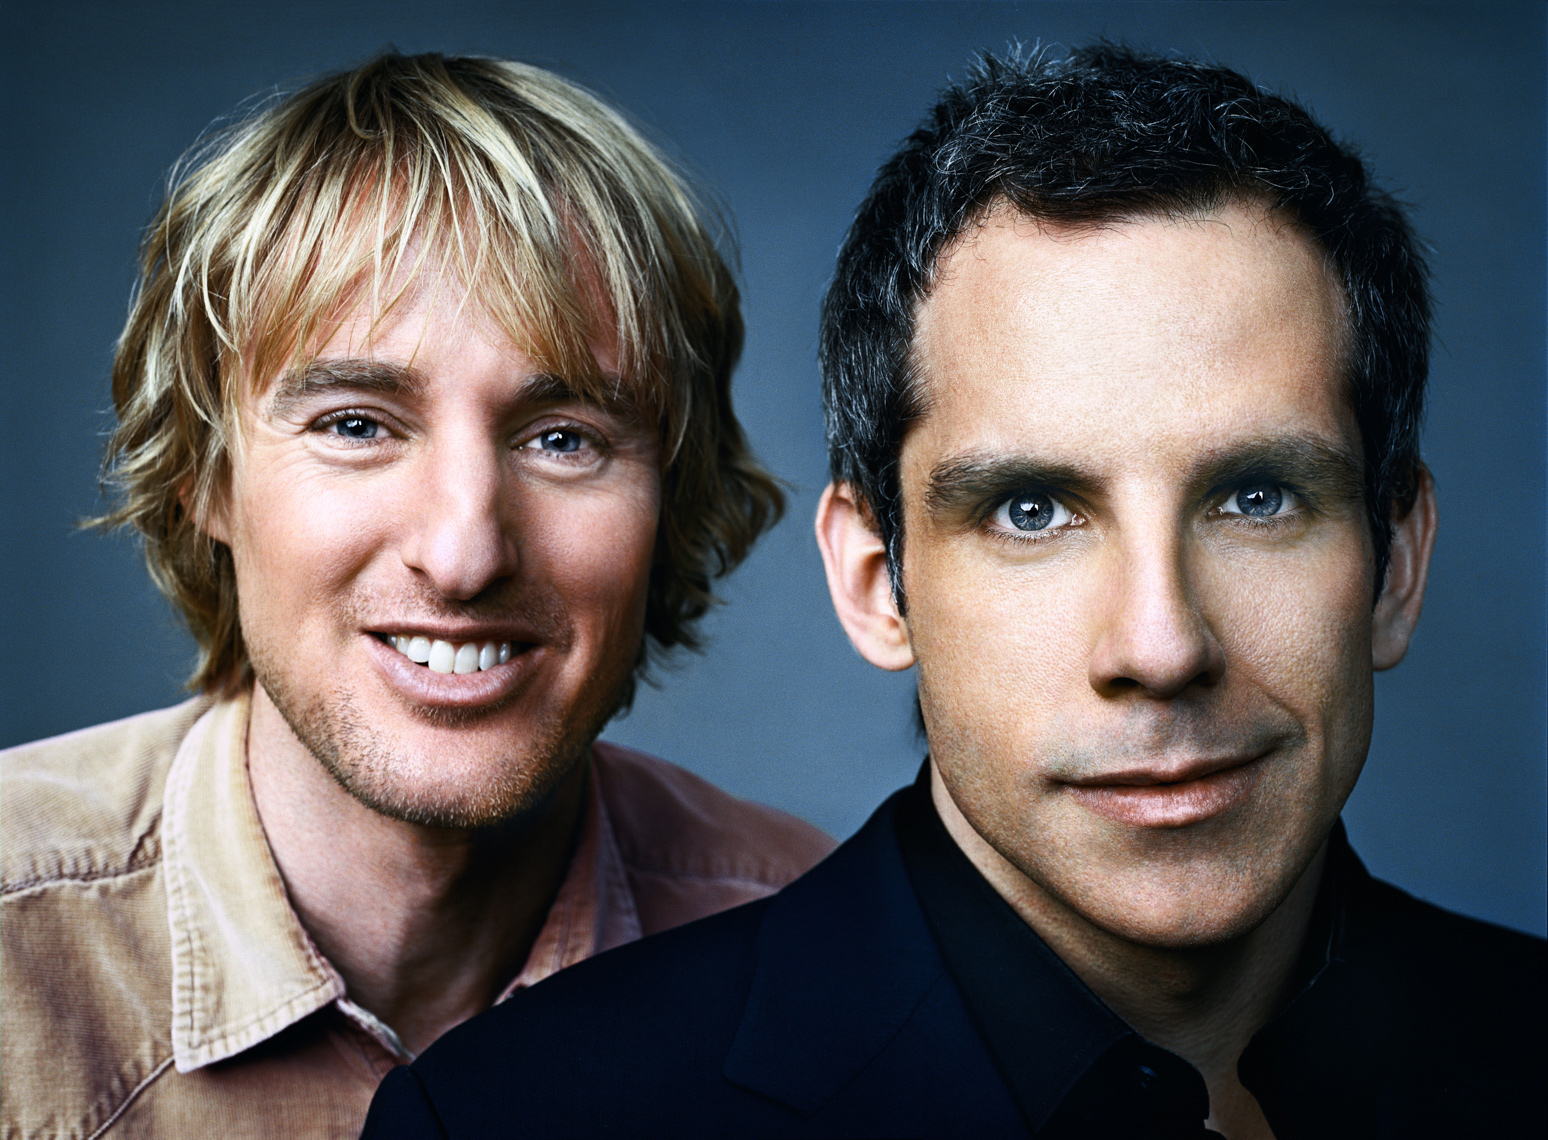 Owen Wilson Ben Stiller Portrait by commercial celebrity photographer Michael Grecco